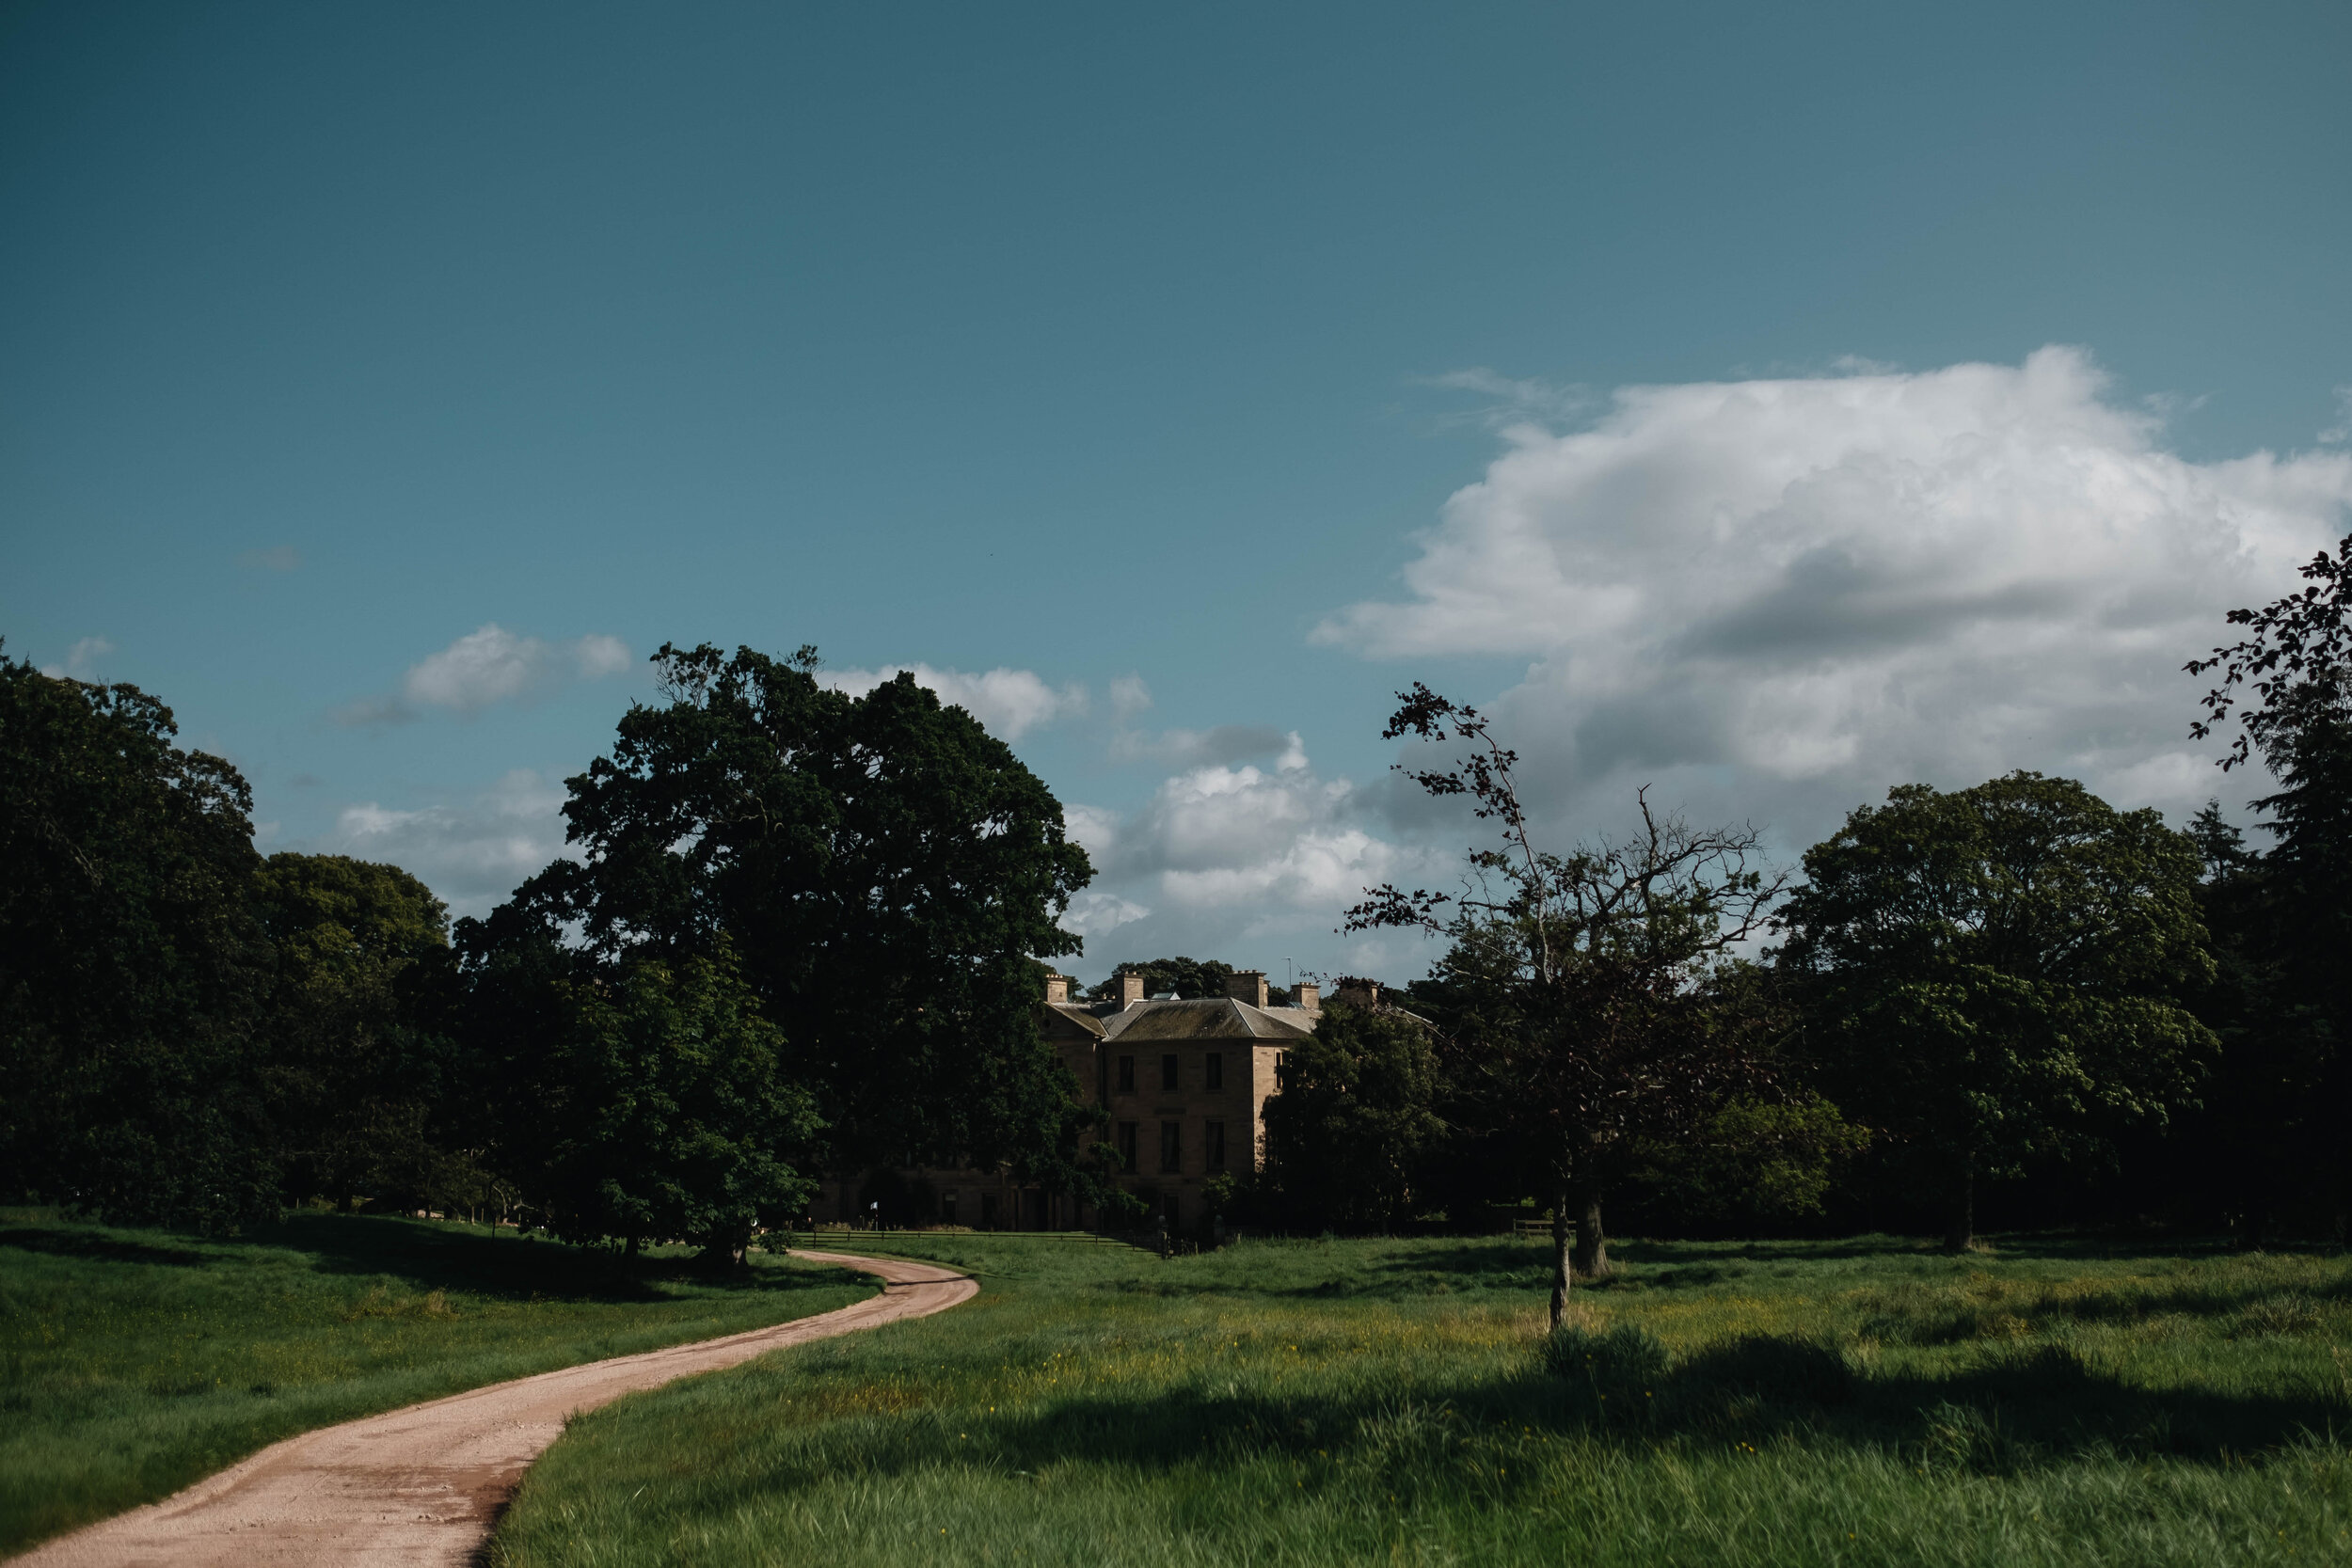 A photography of the drive way leading up to the main house of Cambo Estate.